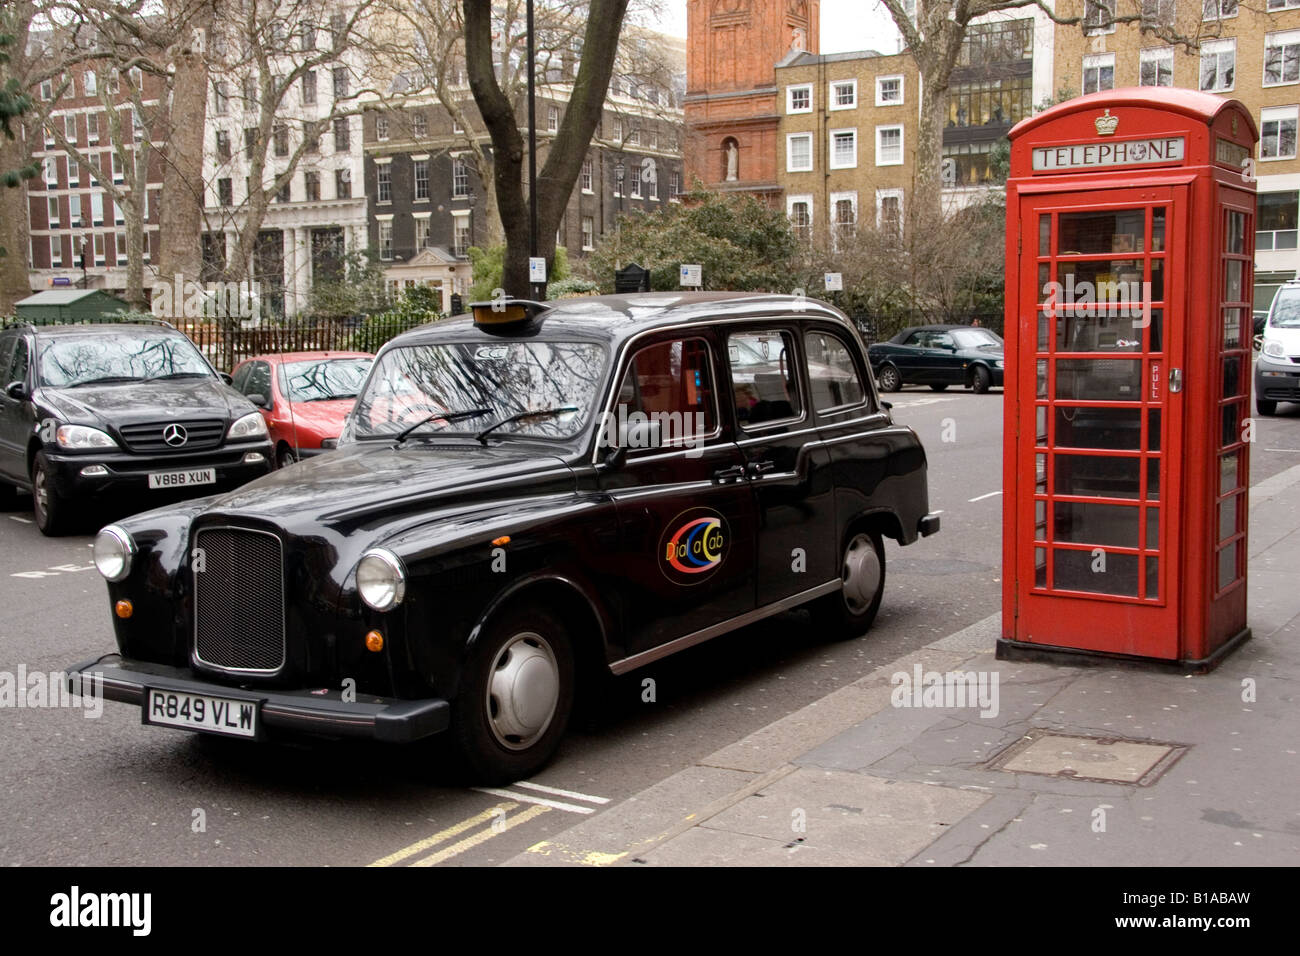 Two of the well known symbols of London. A black Hackney Cab and a red public telephone box. - Stock Image